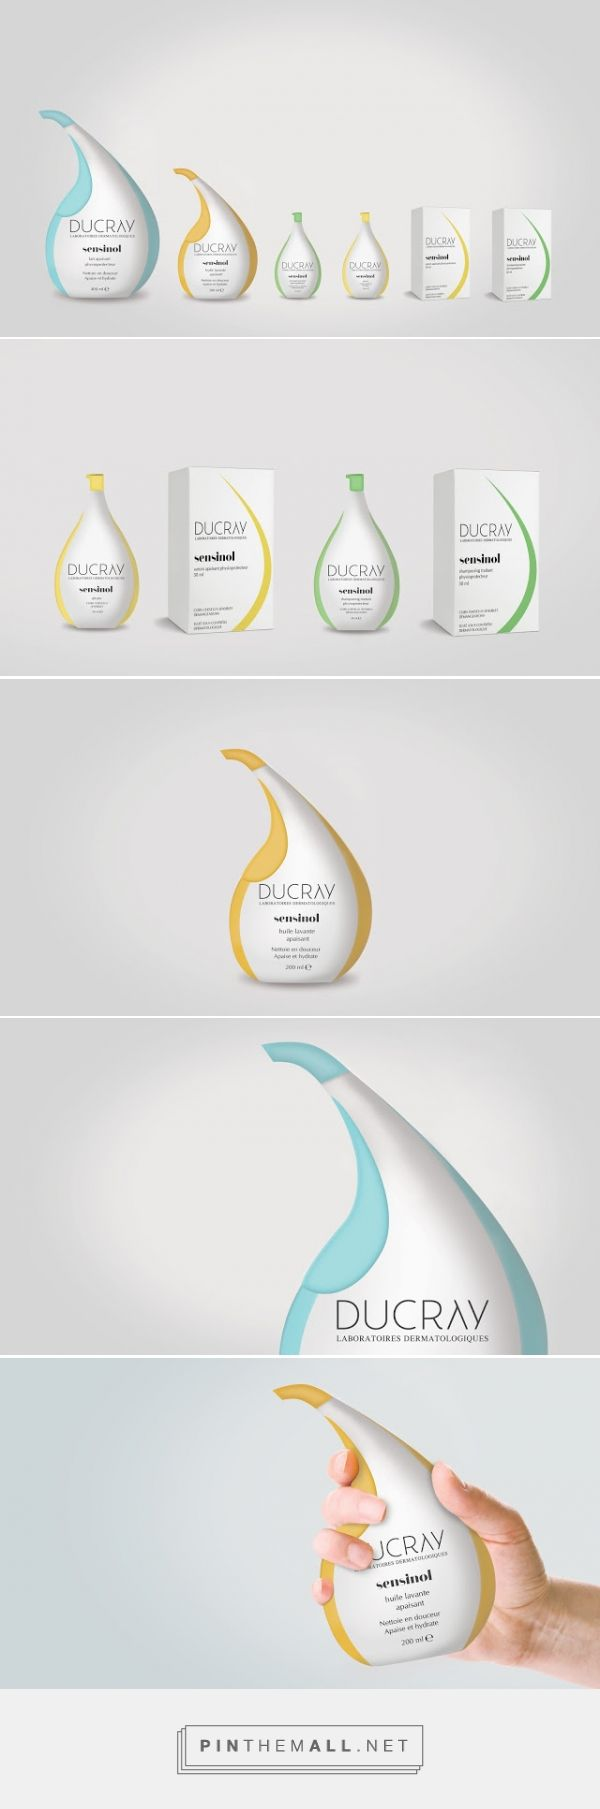 Ducray Sensinol Concept droplet shampoo packaging designed by AmproDesign​ - http://www.packagingoftheworld.com/2015/12/ducray-sensinol-rebranding-concept.html